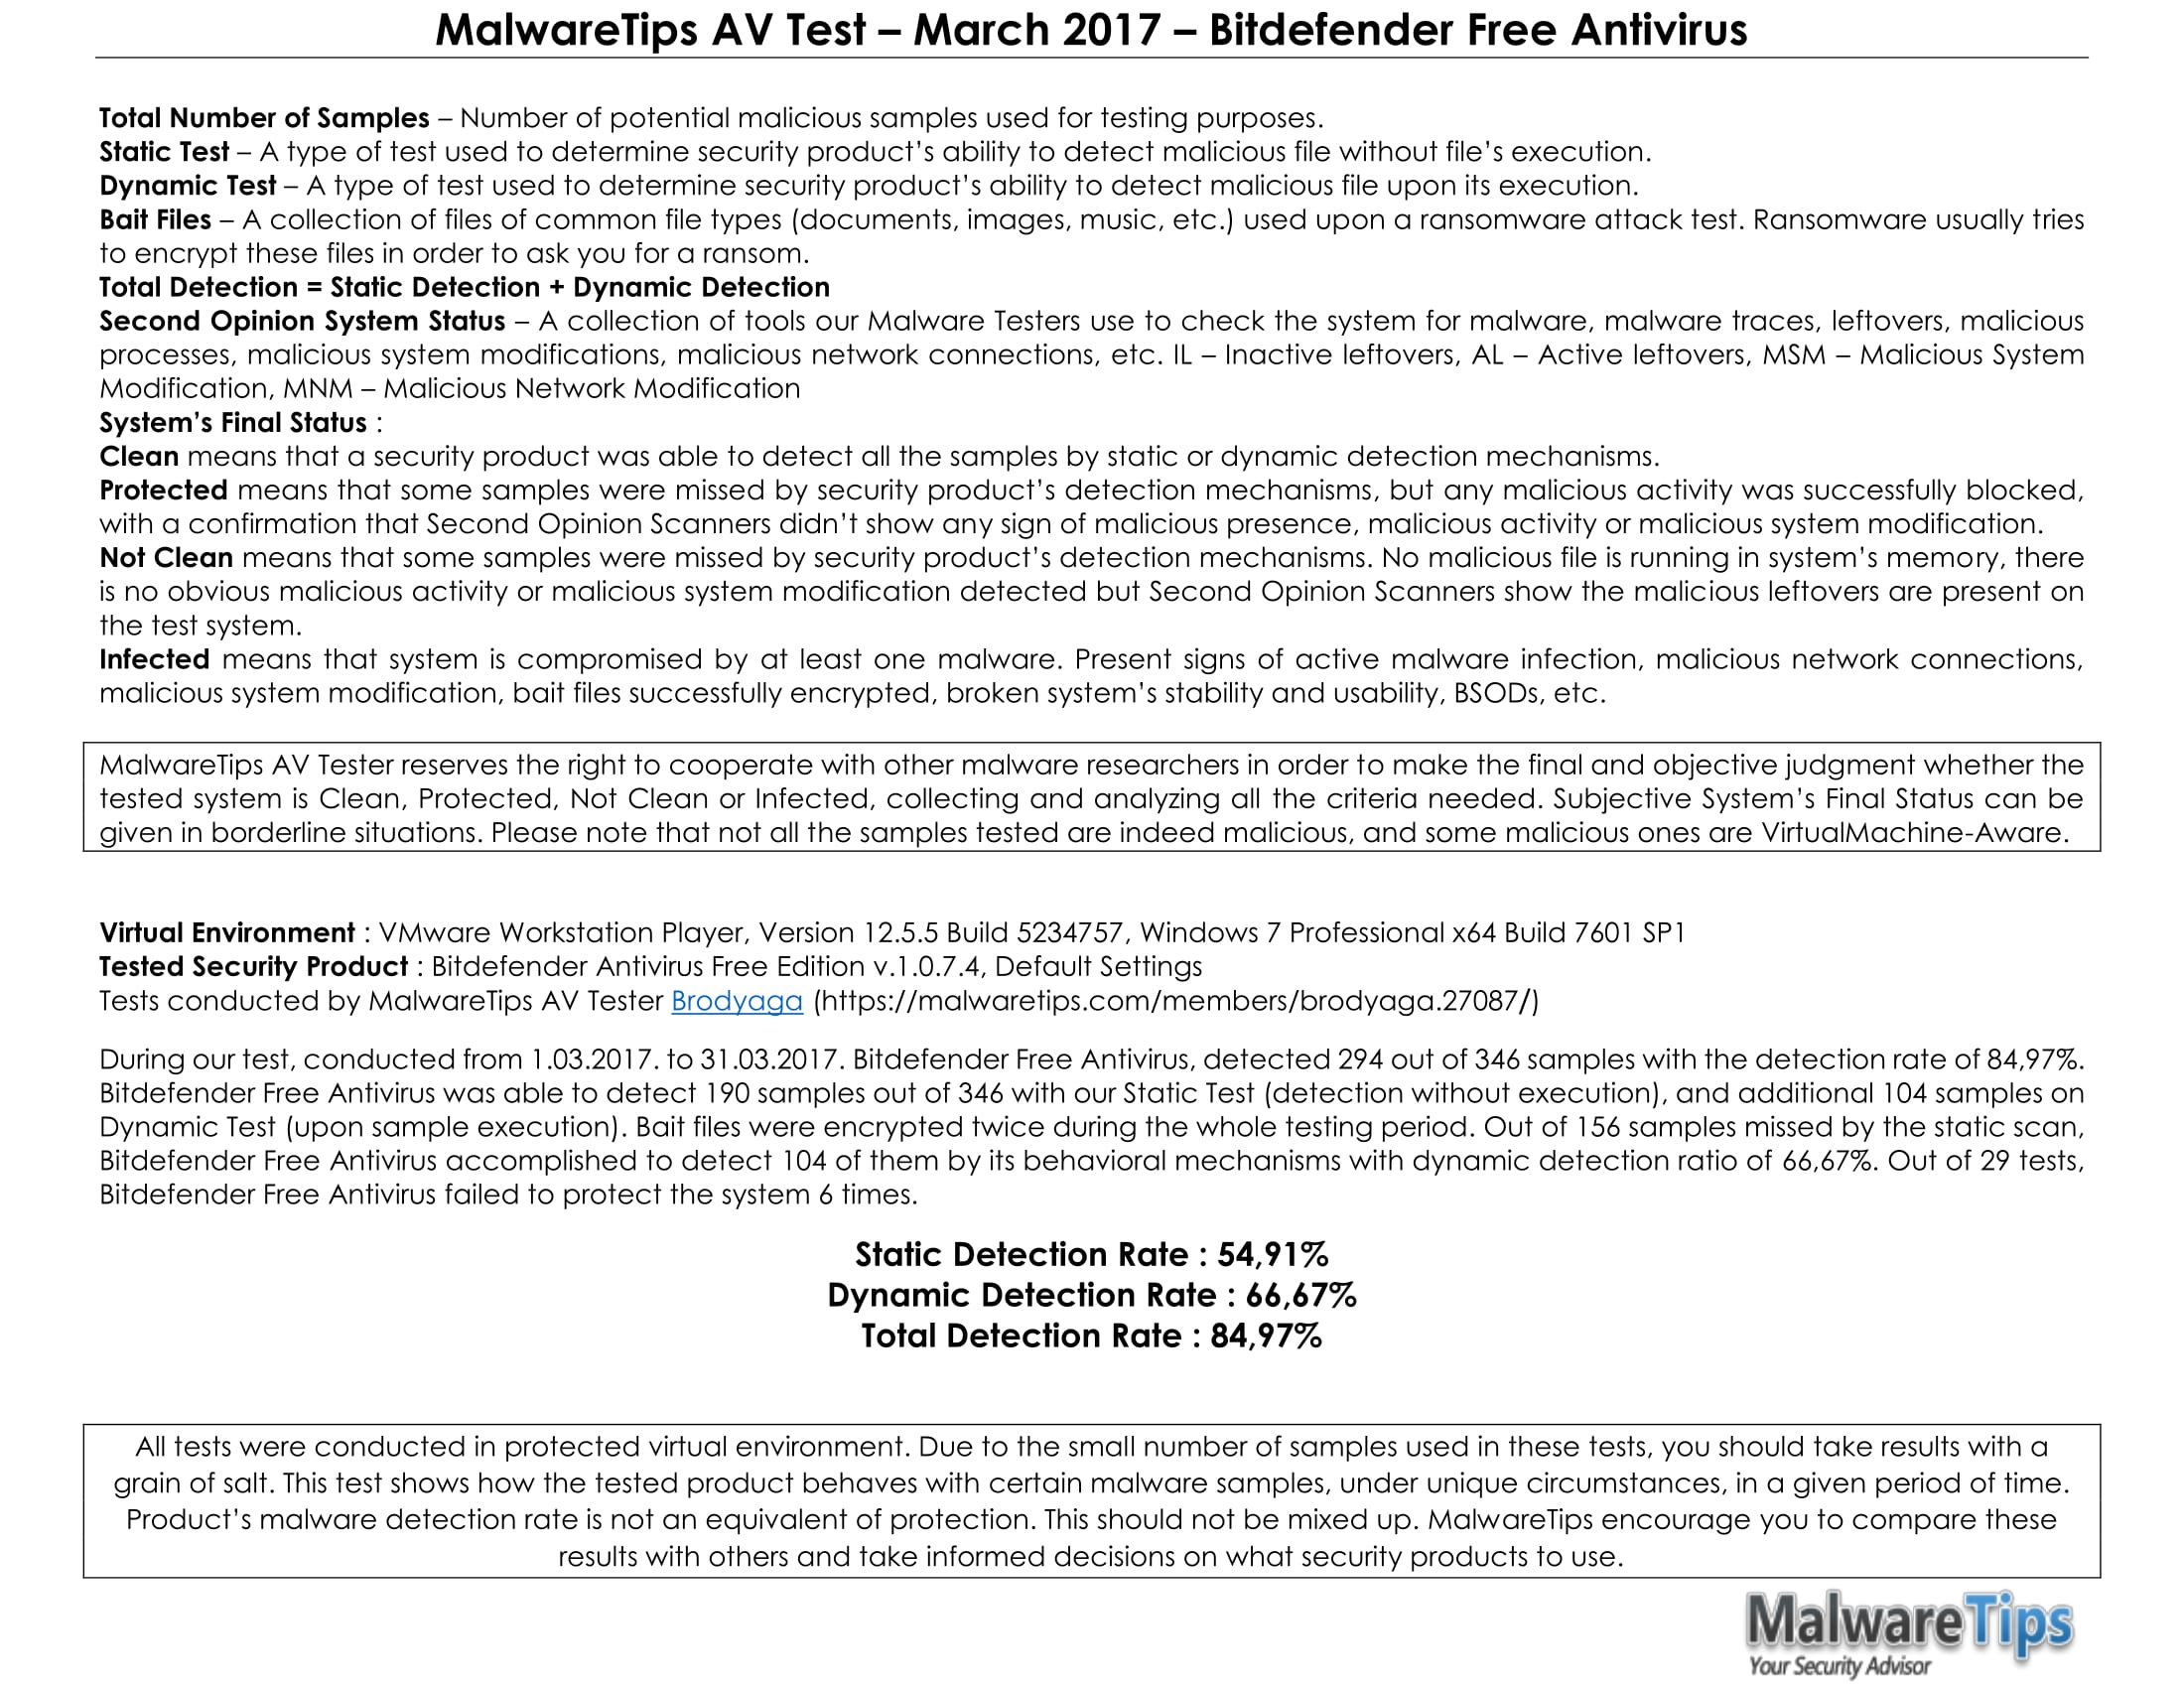 MalwareTips AV Test – March 2017 – Bitdefender Free Antivirus-2.jpg